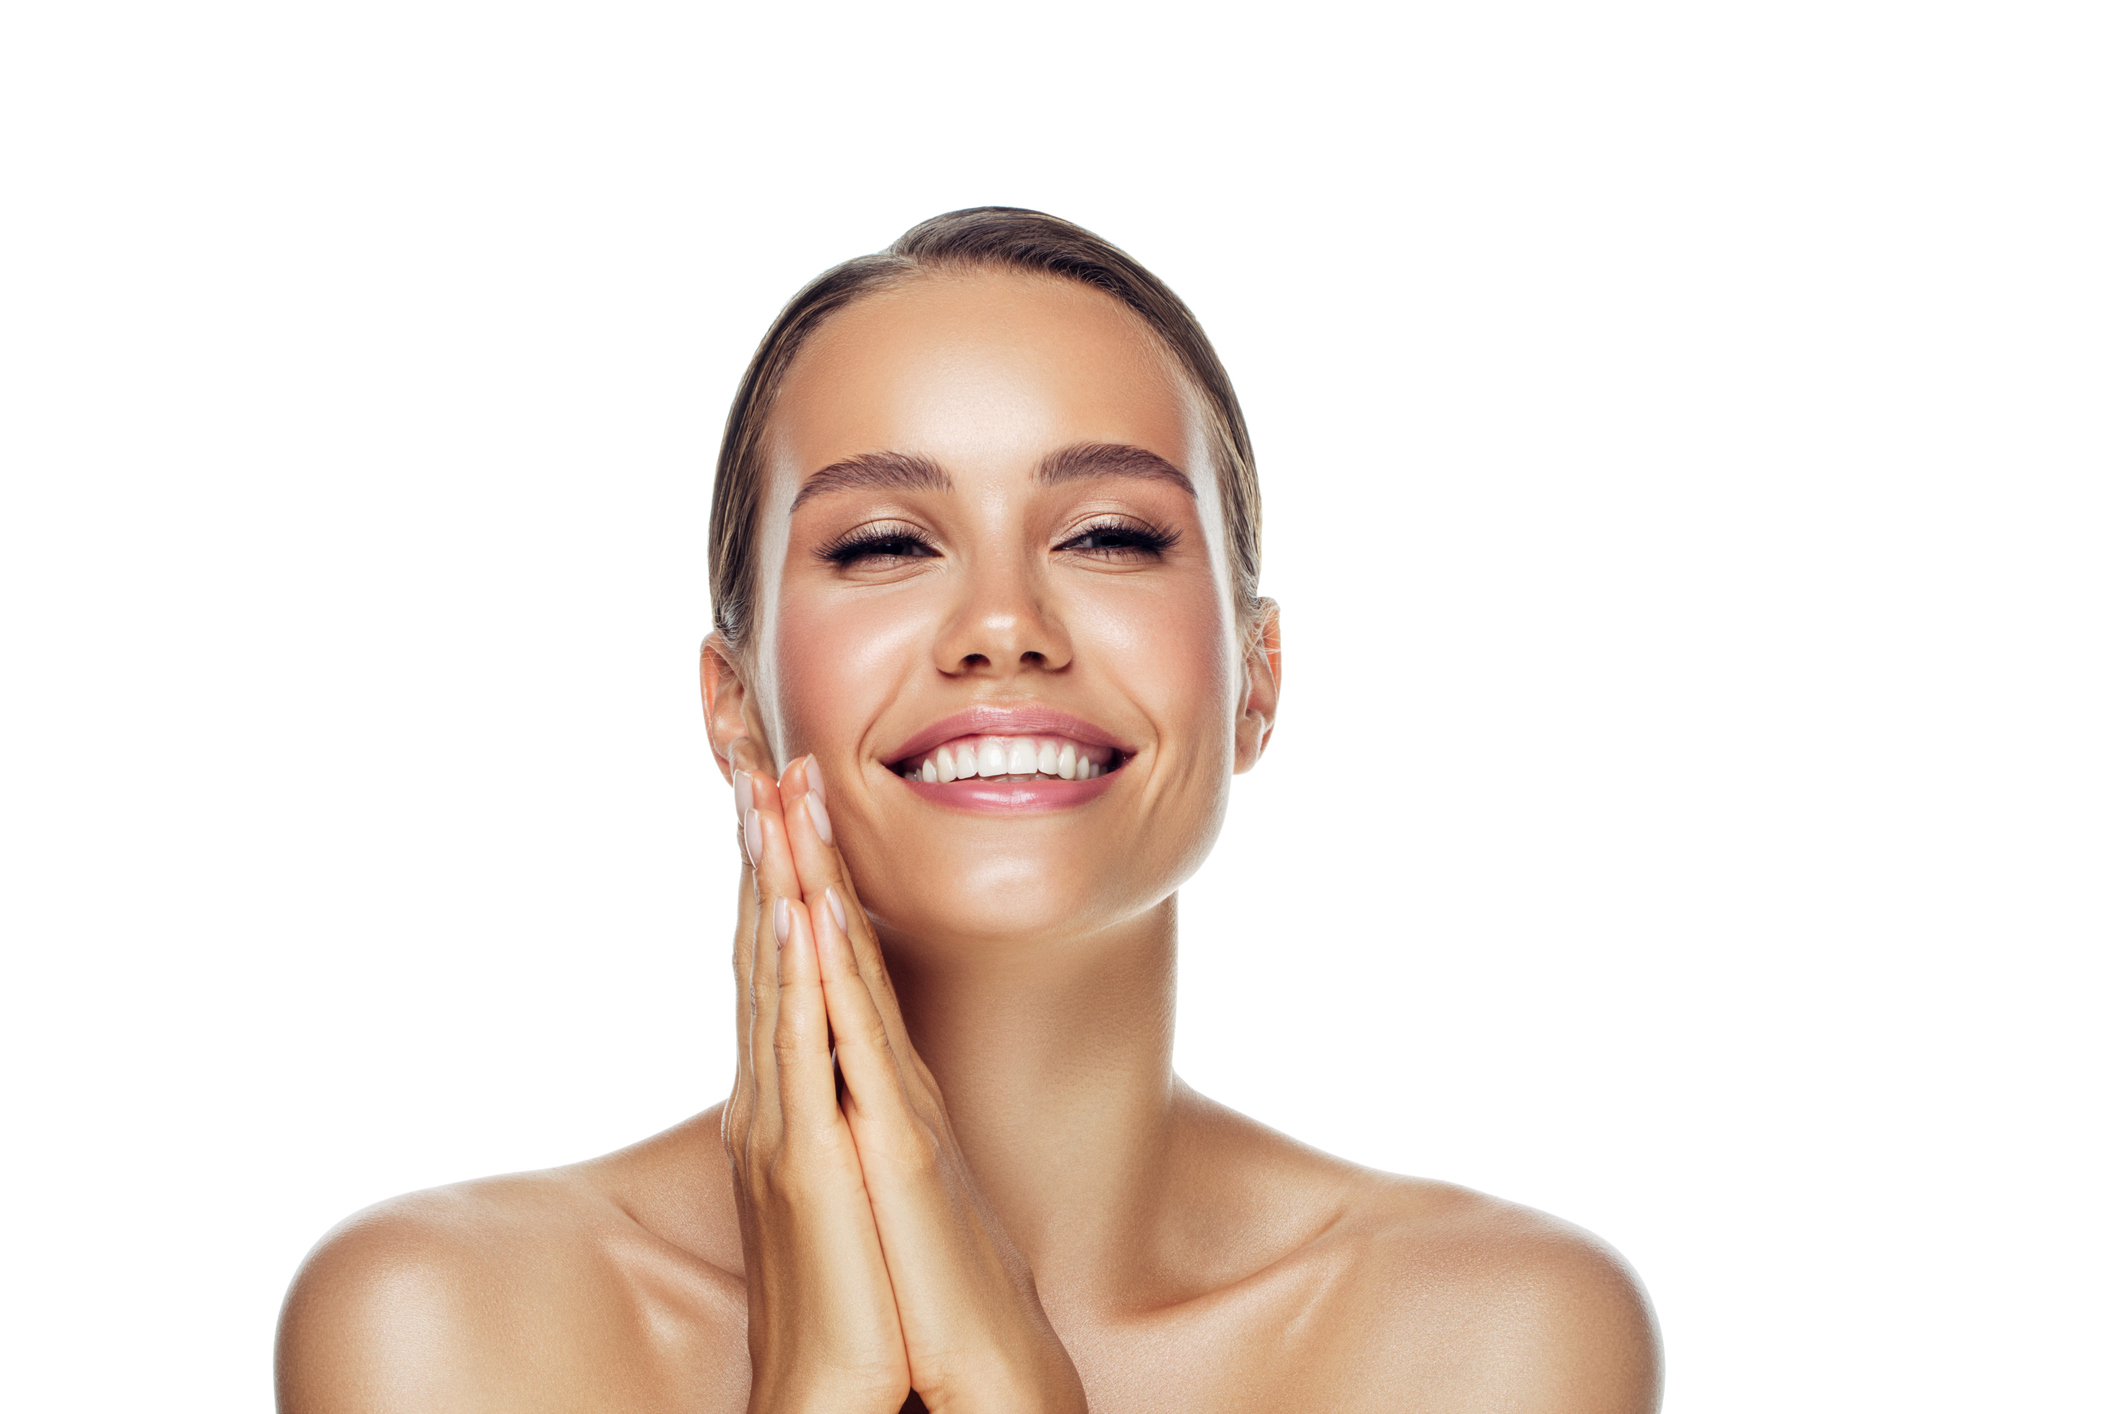 ZL Medspa Blog | Chemical Peels: Differences Between ZL Peels 1.0 & 2.0